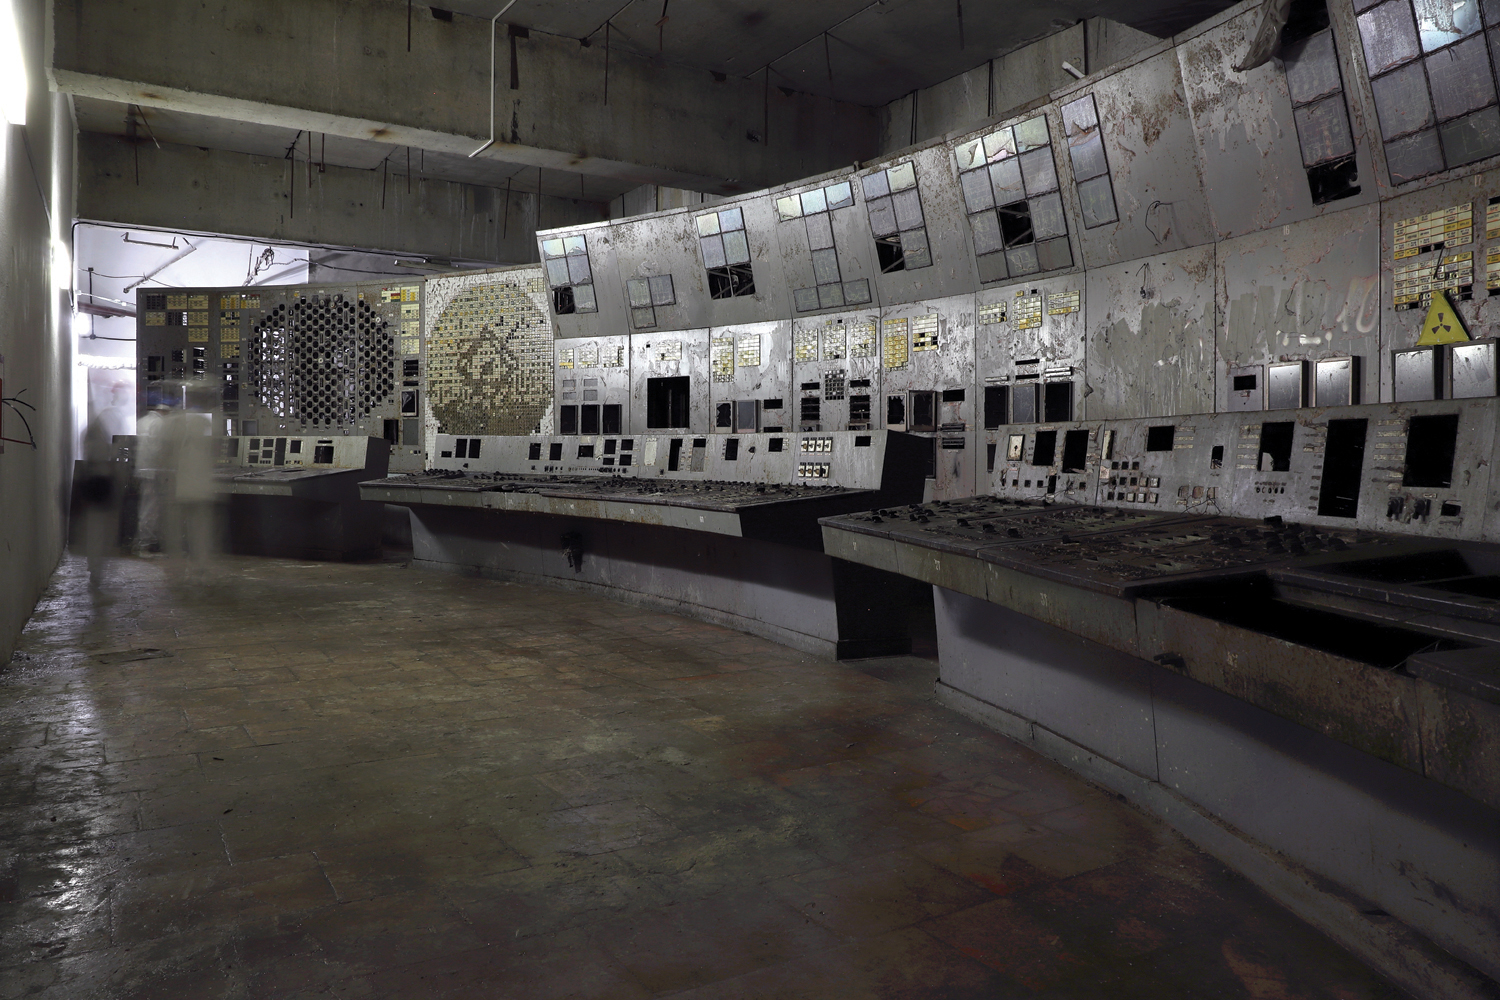 Control Room 4, the room where the 1986 disaster originated. Now stripped of many of its fittings and cleaned of dust, it has been declared safe for visitors. Since autumn 2019, the power plant authorities have included it on official tours. © Darmon Richter / FUEL Publishing